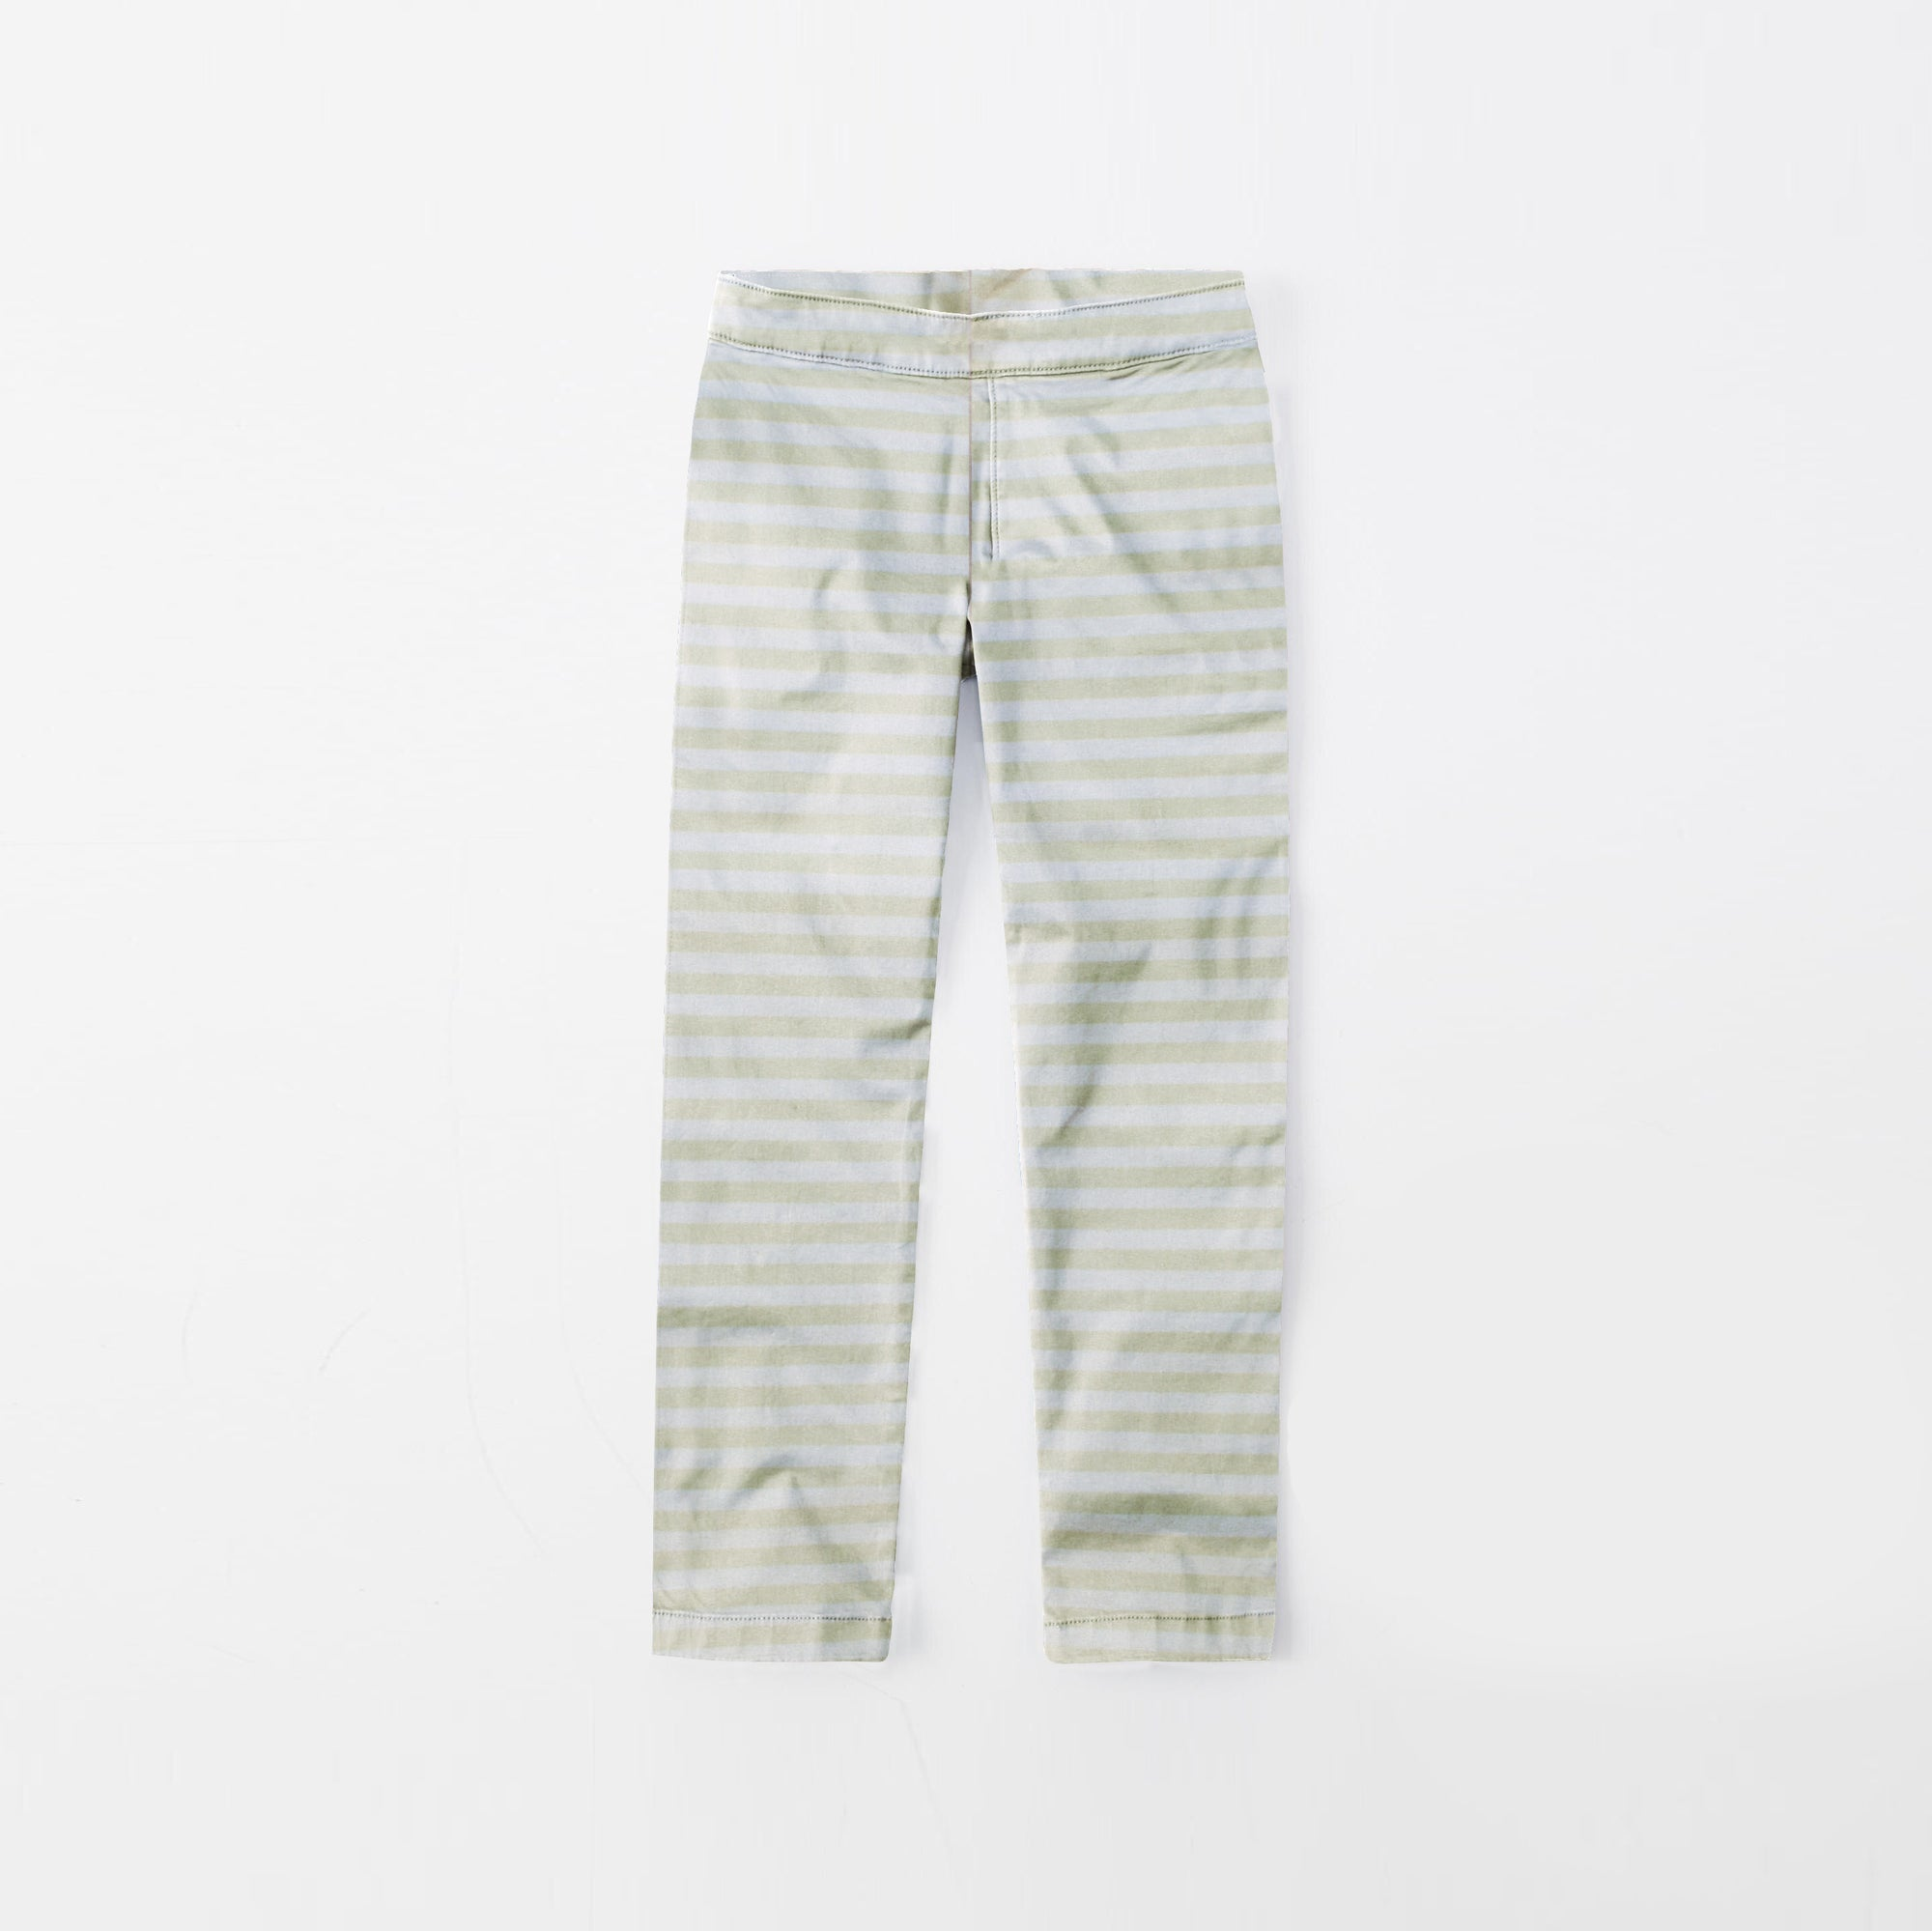 brandsego - Zara Man Slim Fit Flannel Trouser For Kids-White With Stripes-SP340